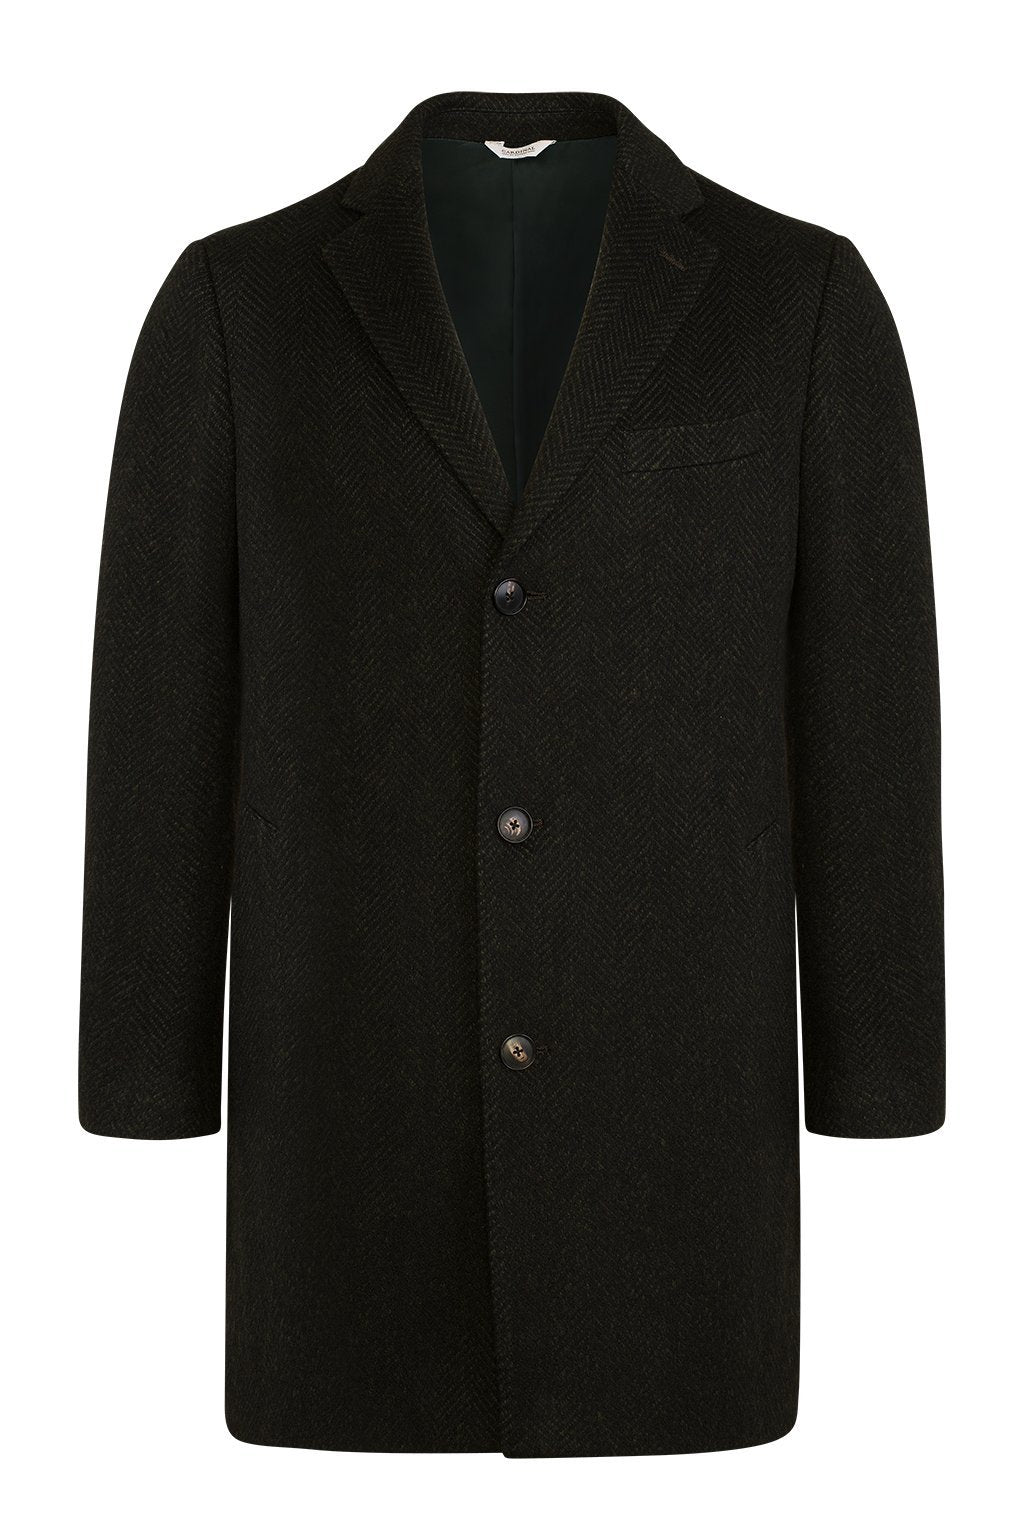 Navy-Olive Herringbone Stone Slim Fit Wool Overcoat - Cardinal of Canada-US